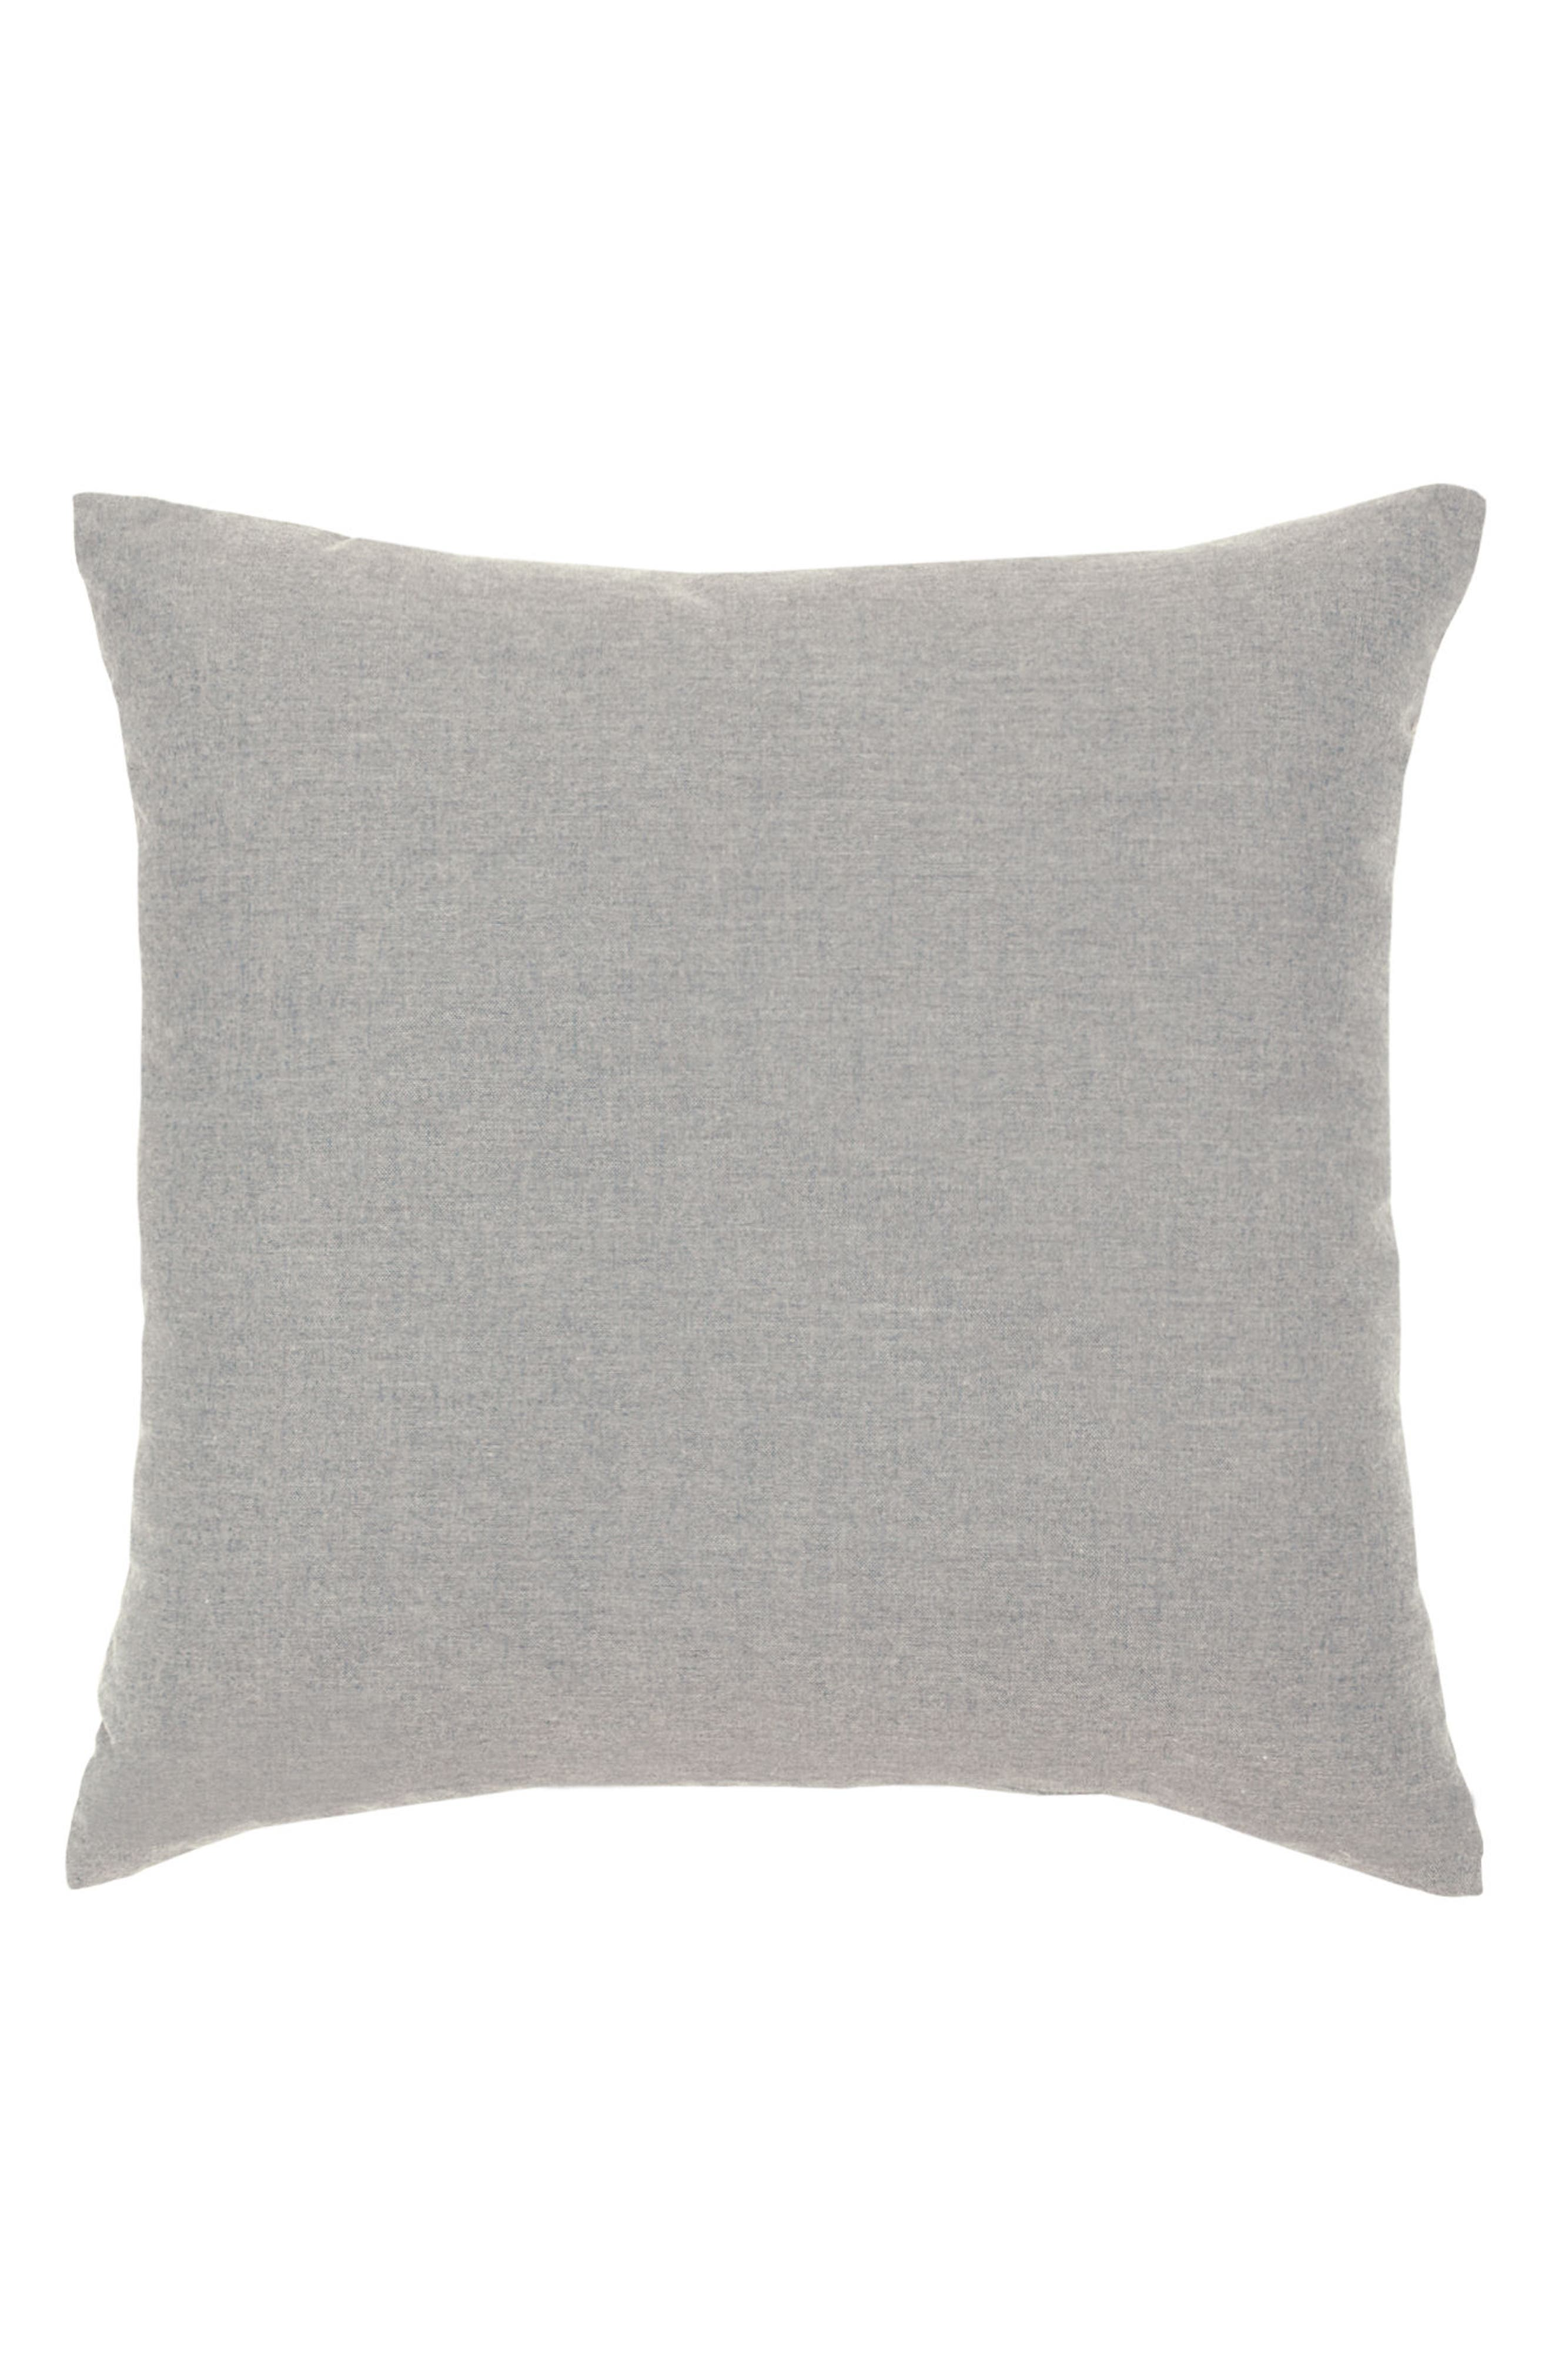 Alabaster Basket Weave Indoor/Outdoor Accent Pillow,                             Alternate thumbnail 2, color,                             Grey/ White